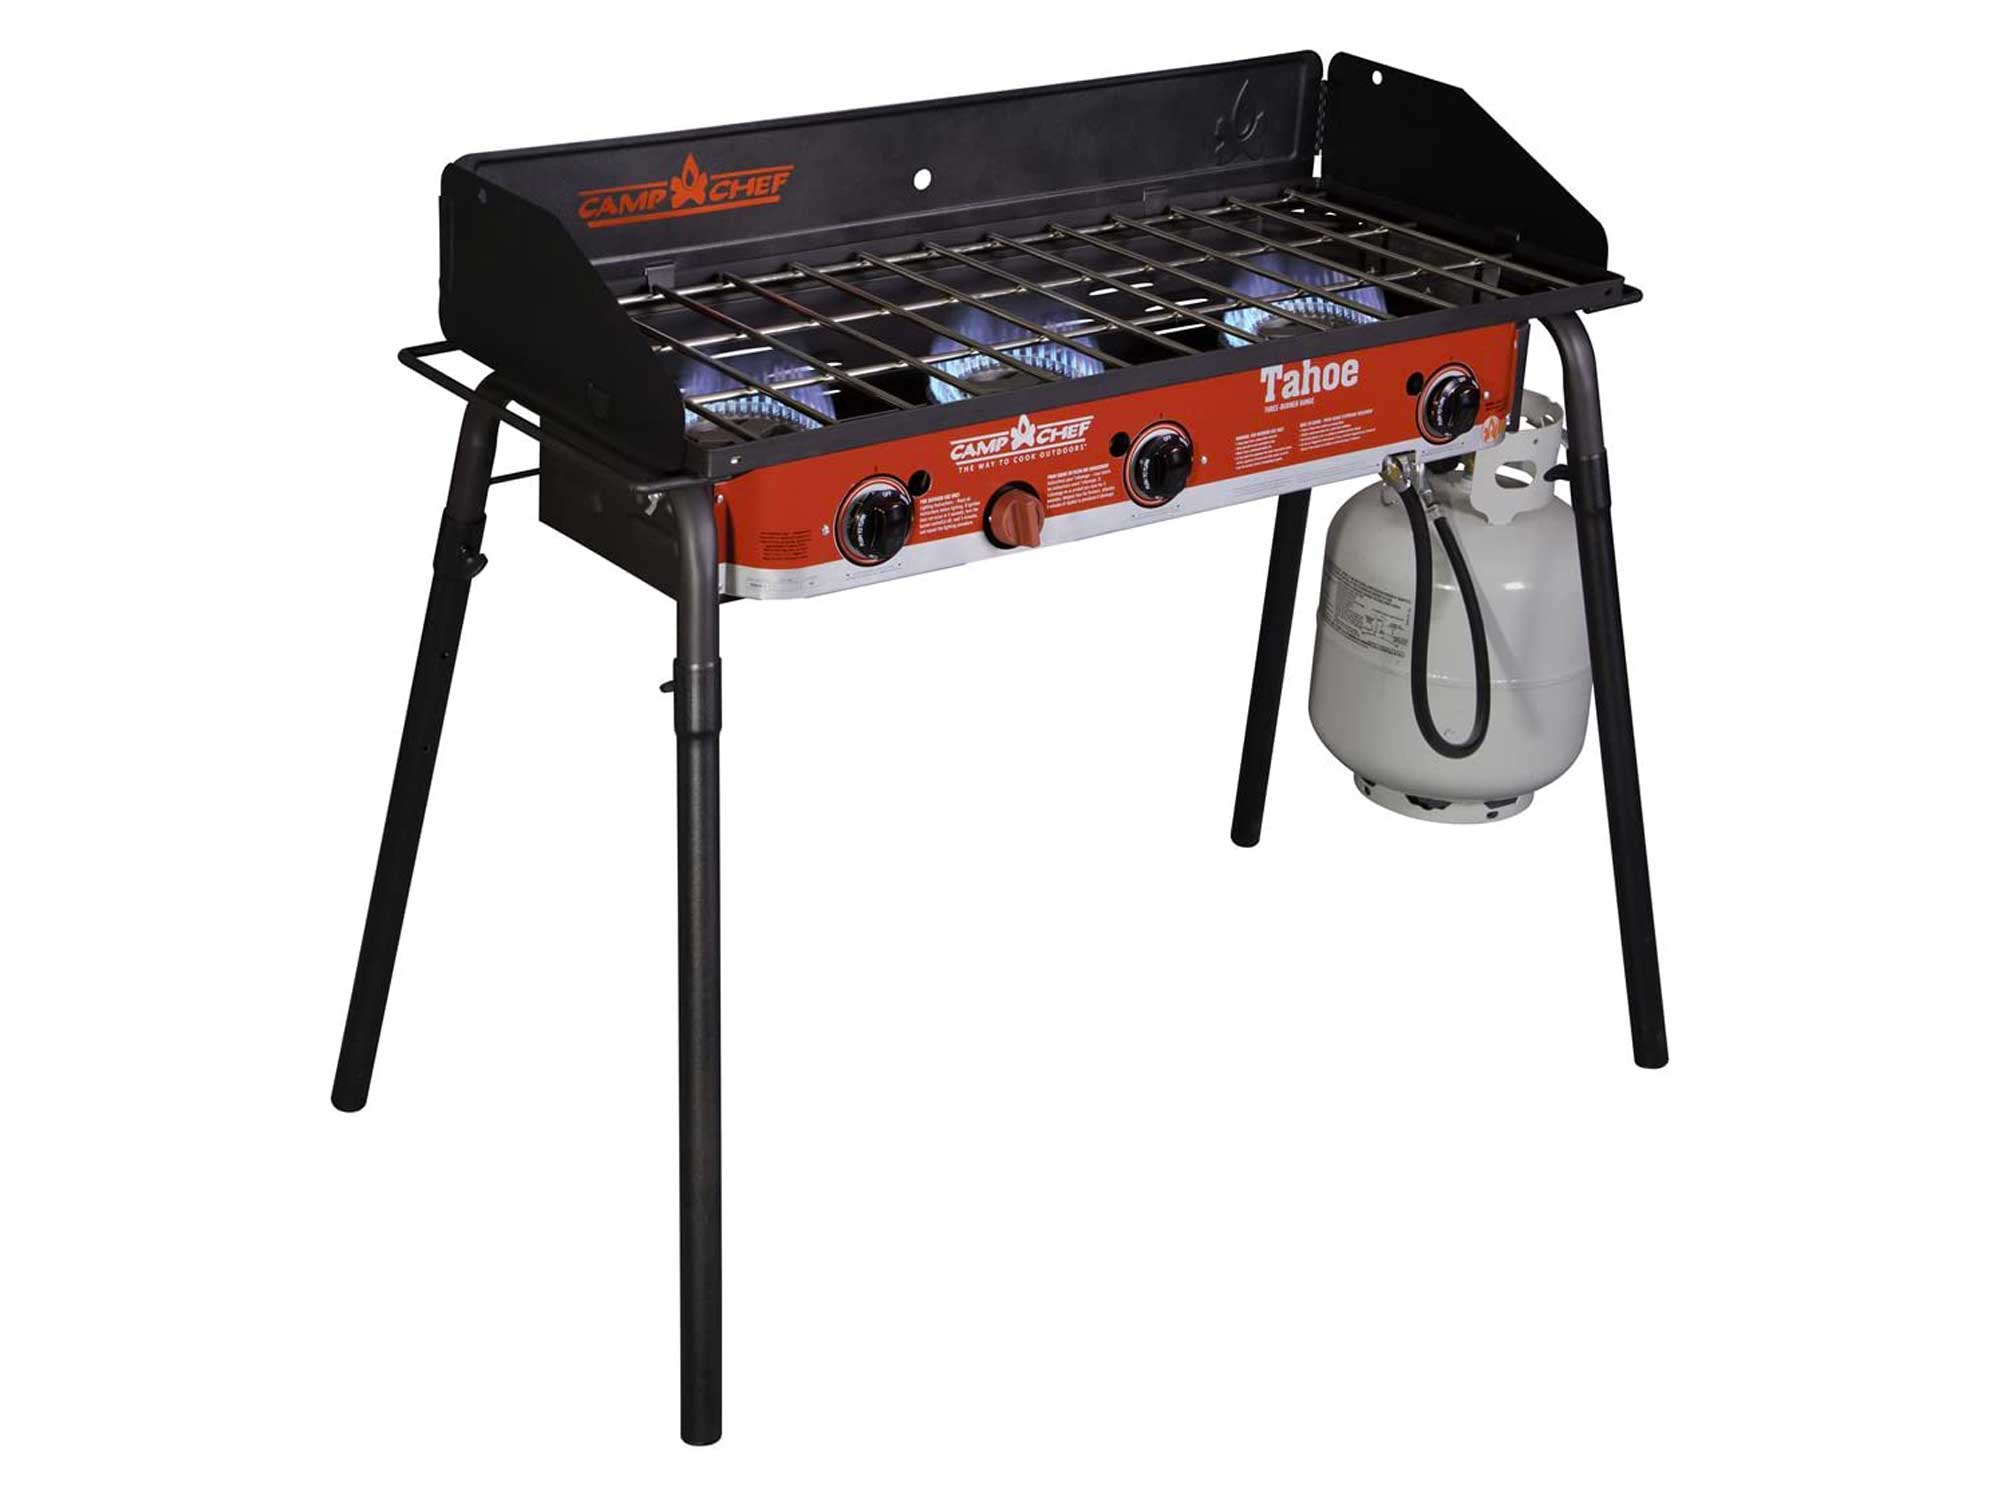 Camp Chef Tahoe Deluxe Three Burner Grill